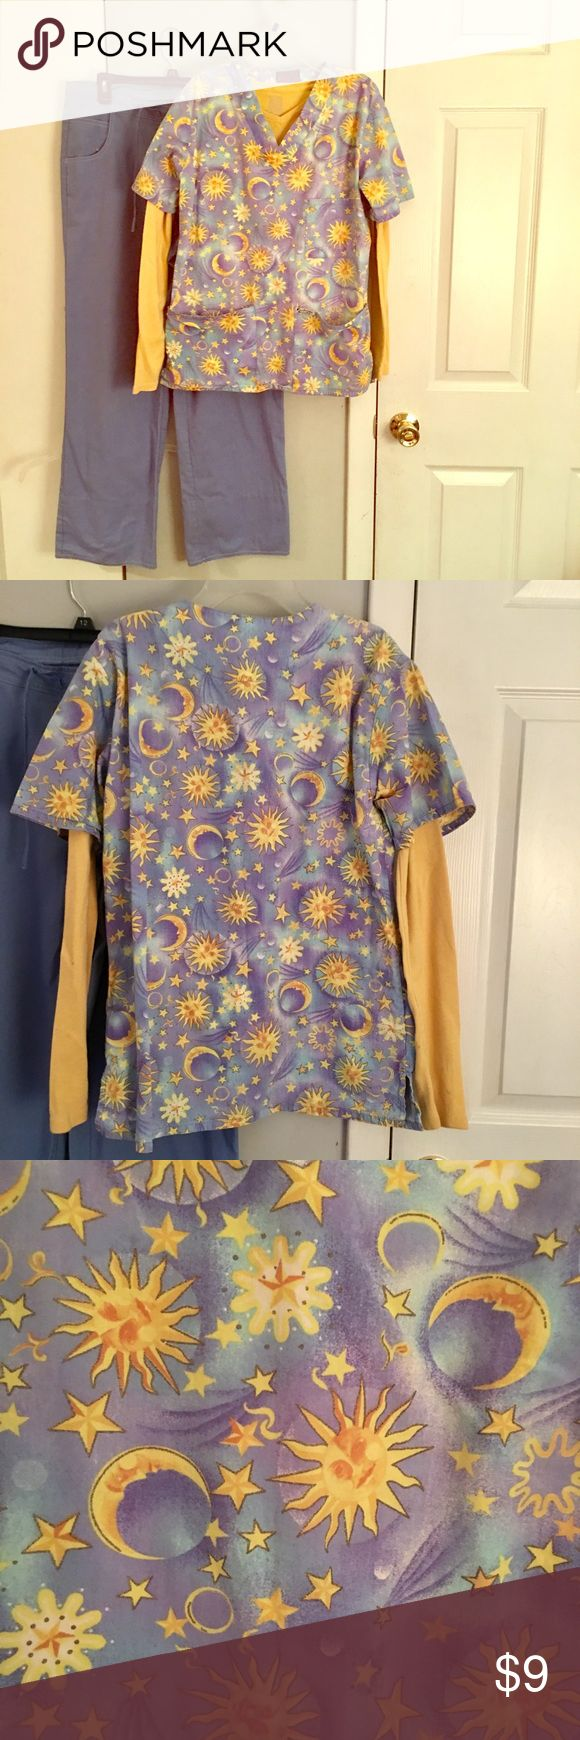 Adorable scrub top with matching long sleeve T. Sm Size small adorable sun and moon short sleeve scrub top with long sleeve yellow shirt tee shirt . Both size small and selling both together for one price. EUC 🌝 scrub bottoms Sean with are sold separately I am selling a number of each scrub tops lab scrub coats scrub bottoms and coordinating long sleeve and short sleeve T-shirts.get an automatic 20% off discount with purchases of three or more listings😀🌝 shirt is by Cherokee and scrub top…